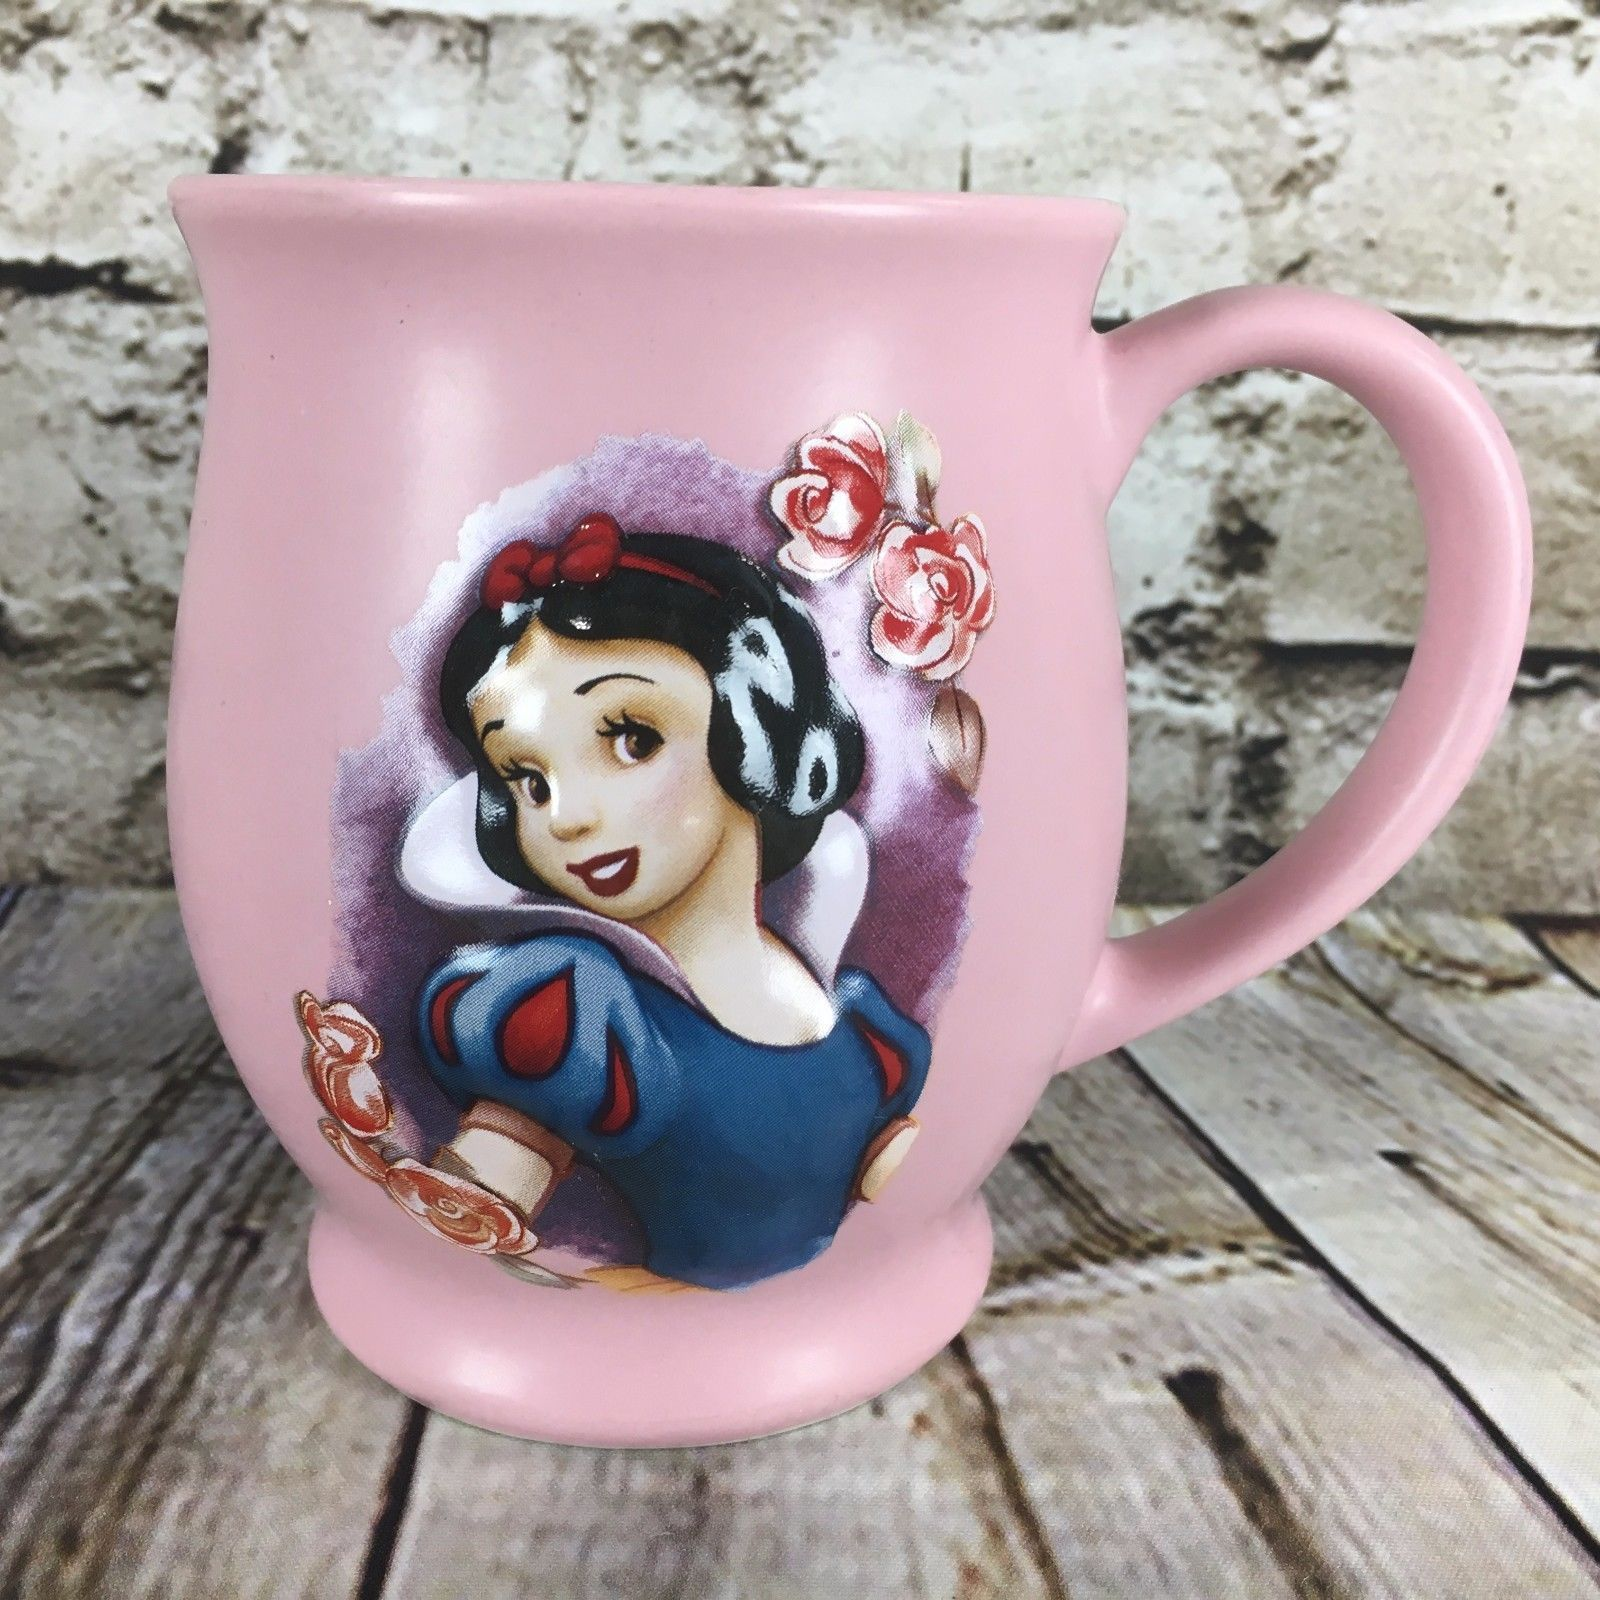 Imposing Snow Disney Store Exclusive Pink Tall Raised Print Ceramic Mug Snow Disney Store Exclusive Pink Tall Raised Print Tall Coffee Mugs Bulk Tall Plain Coffee Mugs furniture Tall White Coffee Cups